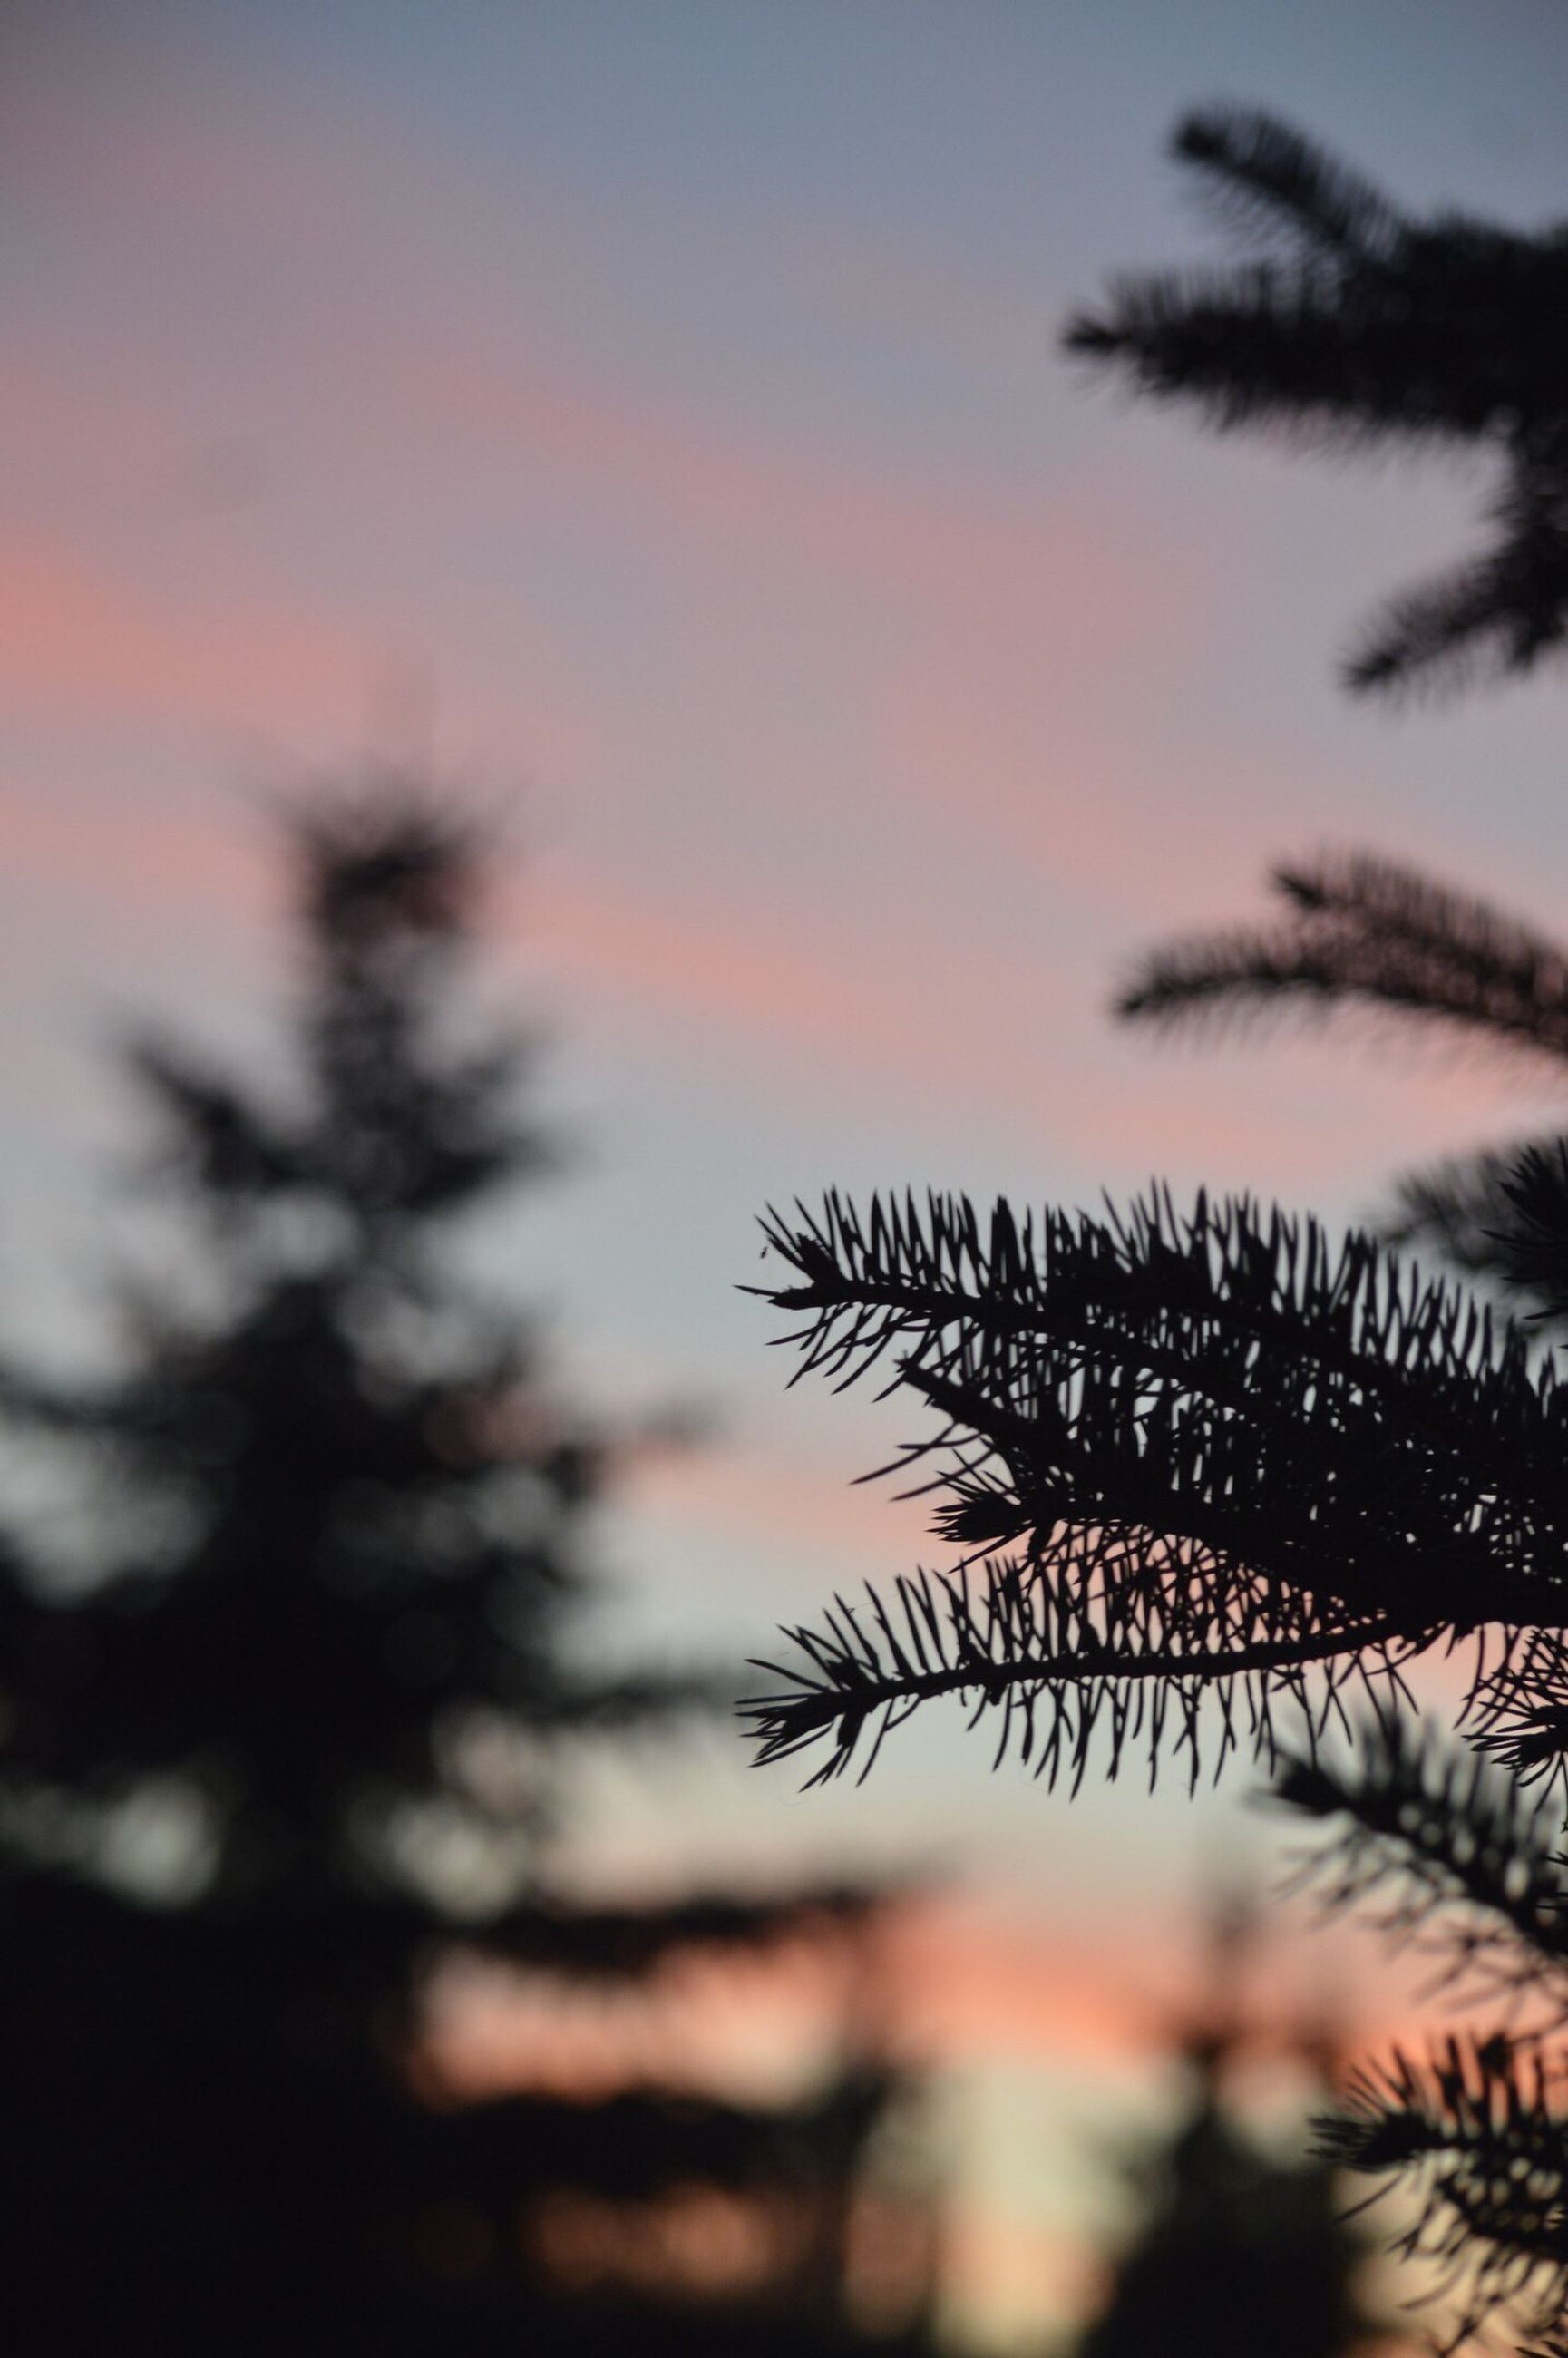 sunset, silhouette, growth, sky, nature, focus on foreground, beauty in nature, tranquility, low angle view, plant, orange color, tree, close-up, selective focus, scenics, dusk, tranquil scene, outdoors, sun, no people